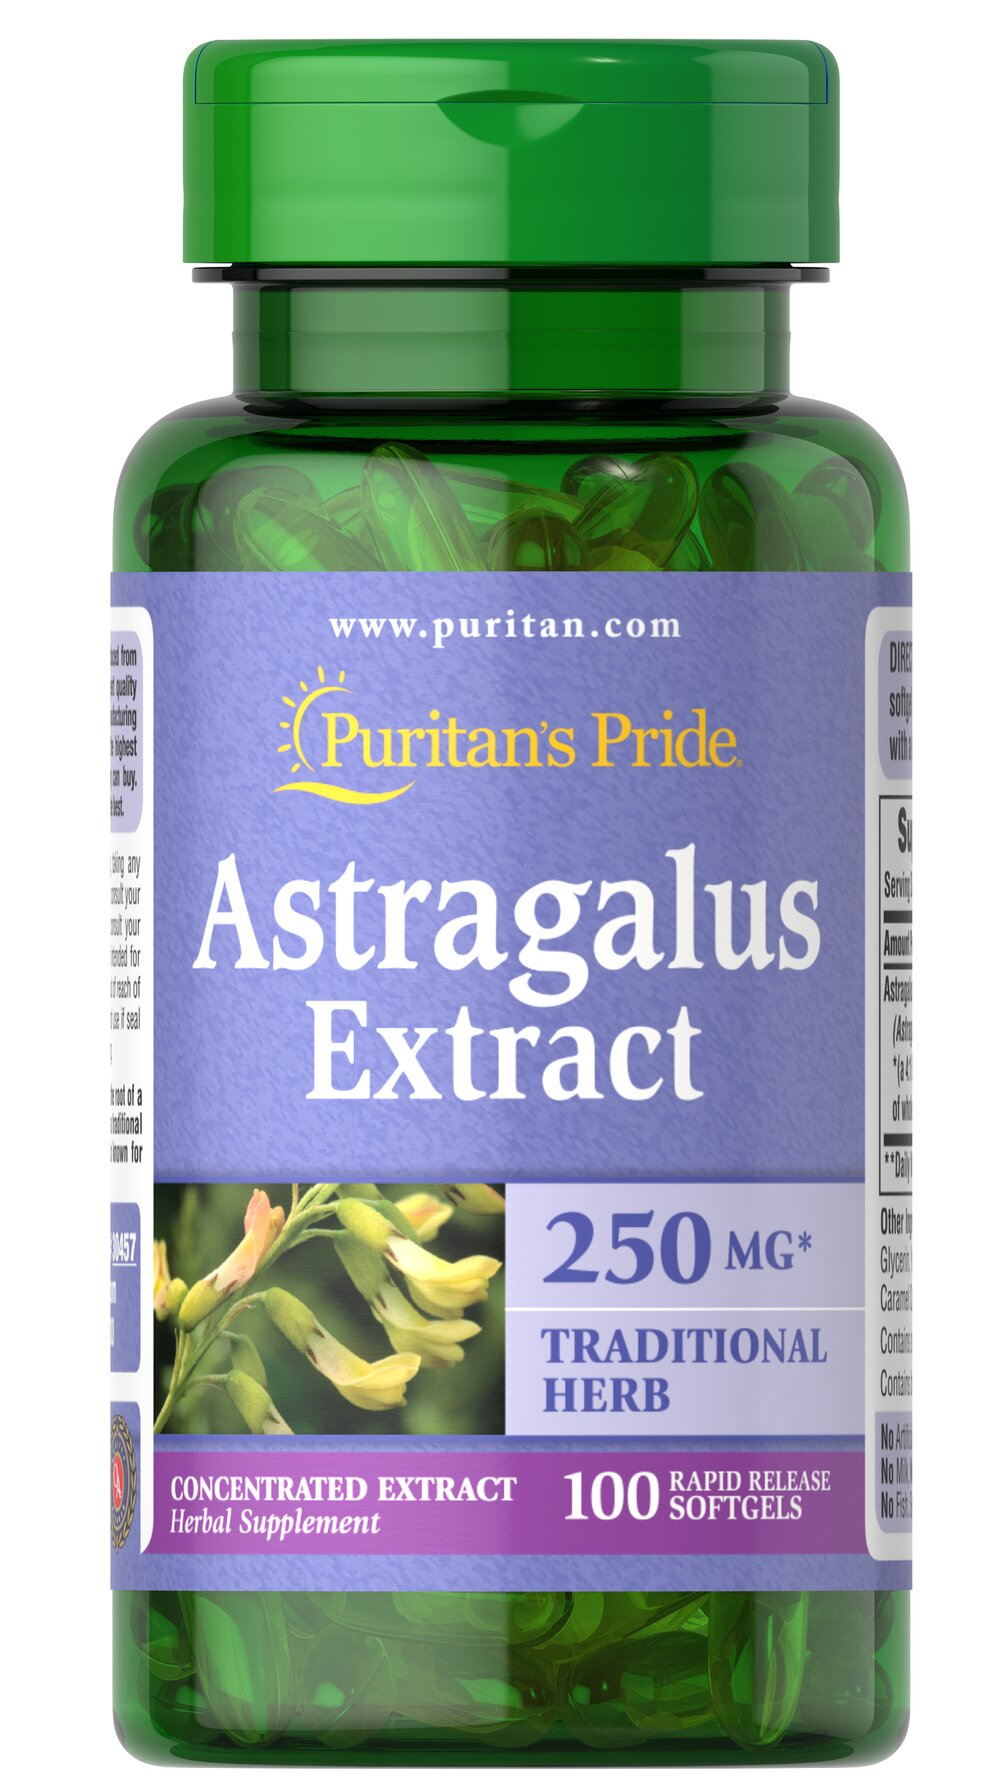 Astragalus Extract 1000 mg* <p>Traditional Chinese Herb </p><p>Astragalus contains naturally occurring flavonoids and polysaccharides. As a traditional Chinese herb, Astragalus is known for its goodness.</p> 100 Softgels 1000 mg $9.23